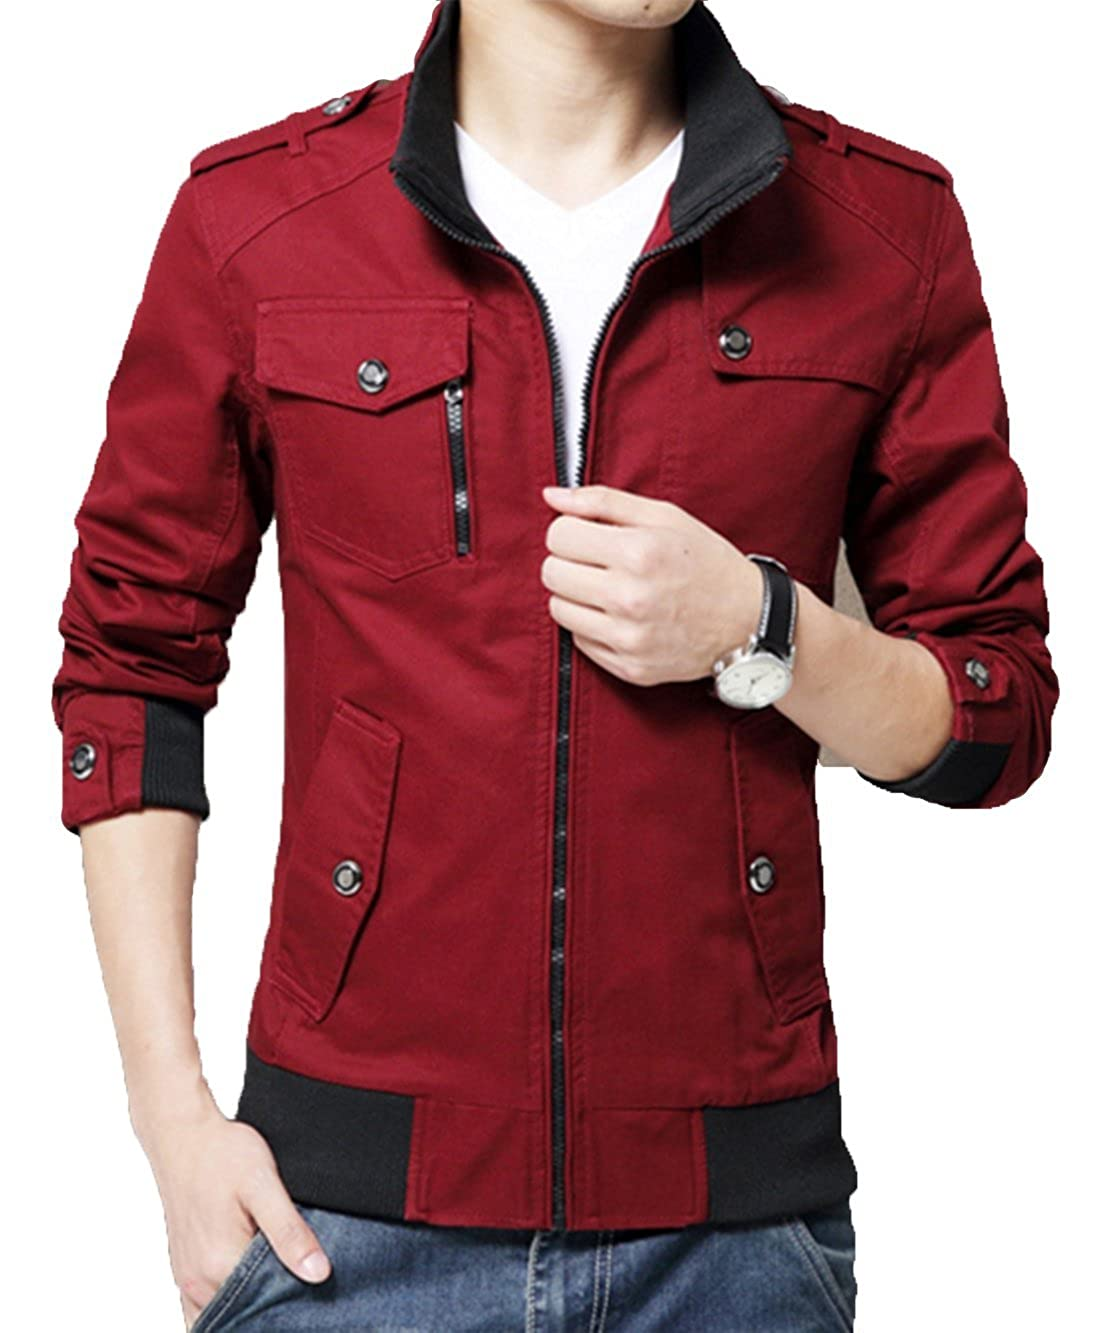 XueYin Men's Solid Cotton Casual Wear Stand Collar Jacket gh7542